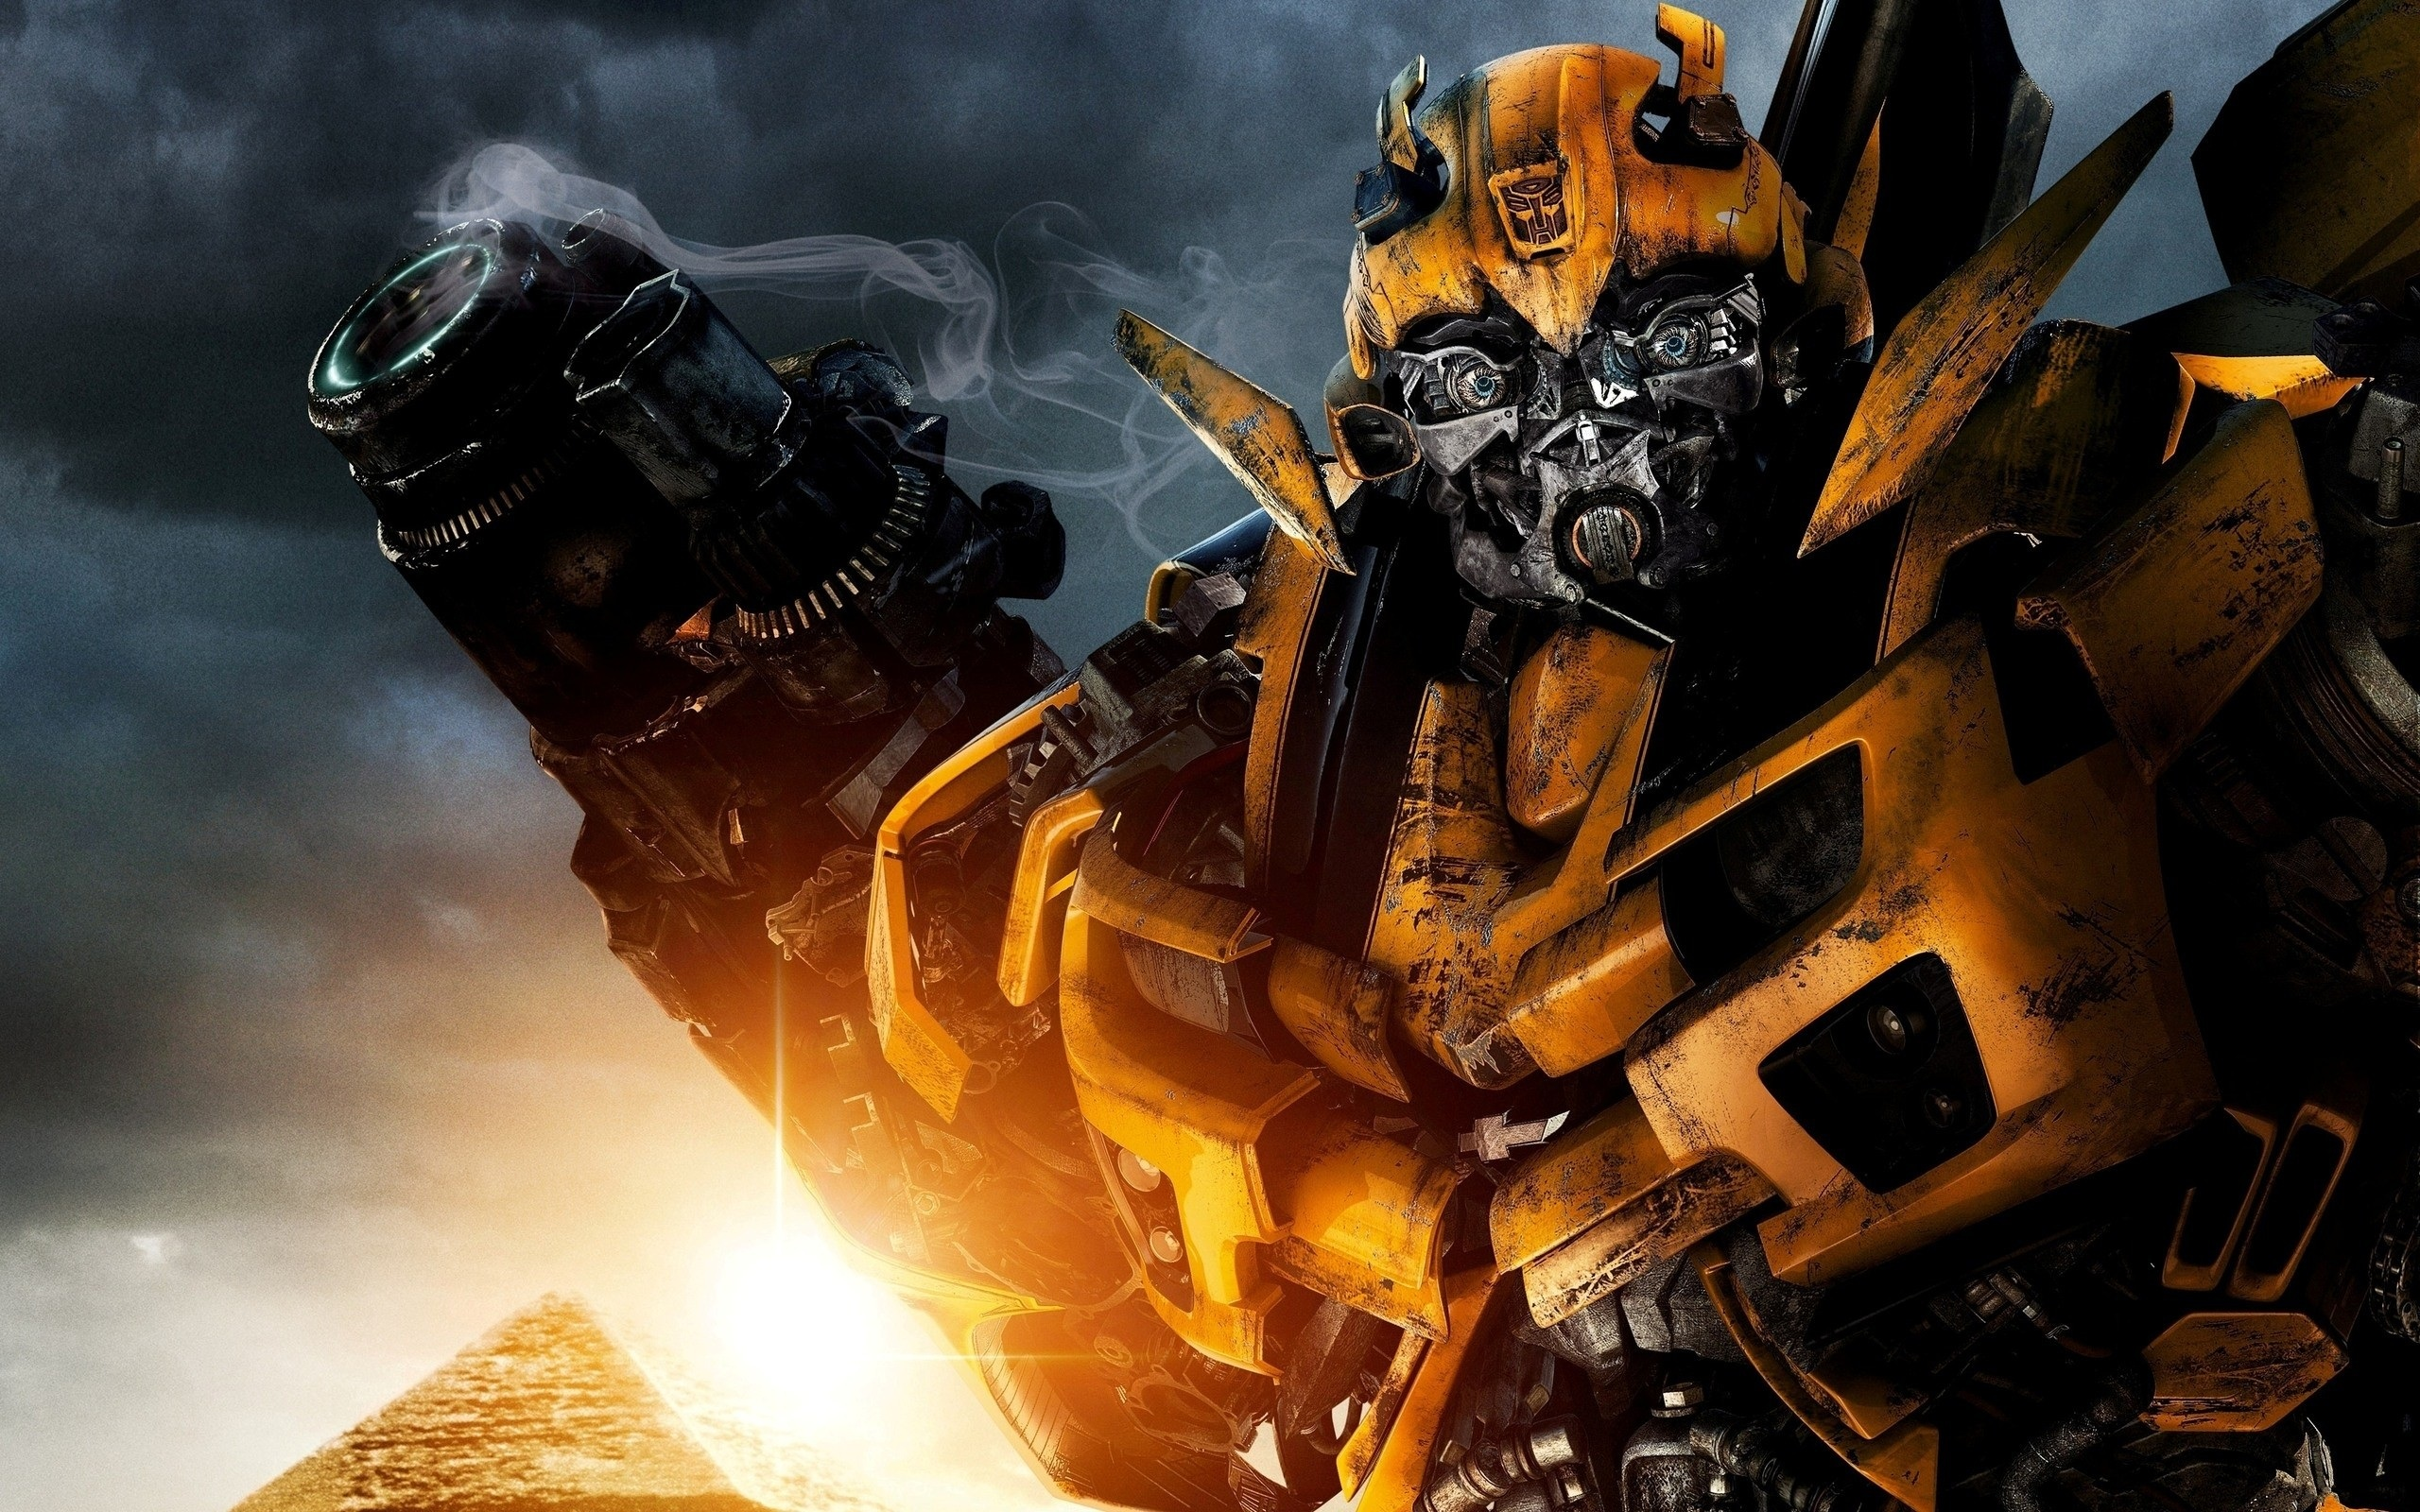 HD Transformers Wallpapers & Backgrounds For Free Download